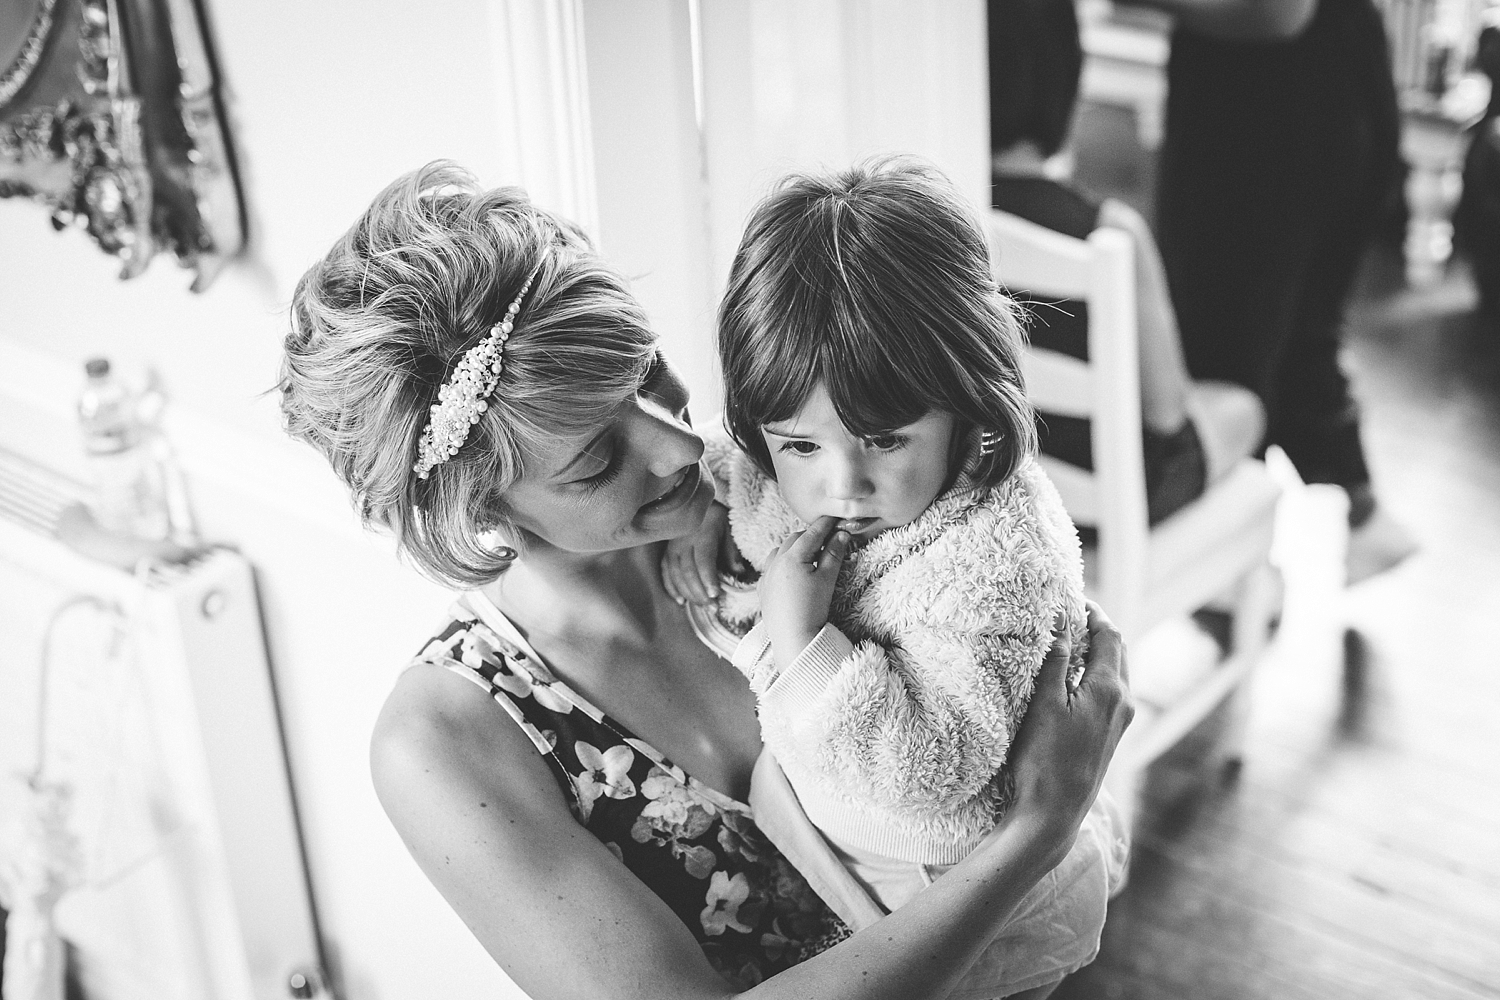 Natlie-Matthew-yorkshire-natural-relaxed-fun-documentary-reportage-candid-wedding-photography-photographer-Derby-Nottingham-Derbyshire-Nottinghamshire-Leicestershire-Lincolnshire-East-Midlands-13.jpg